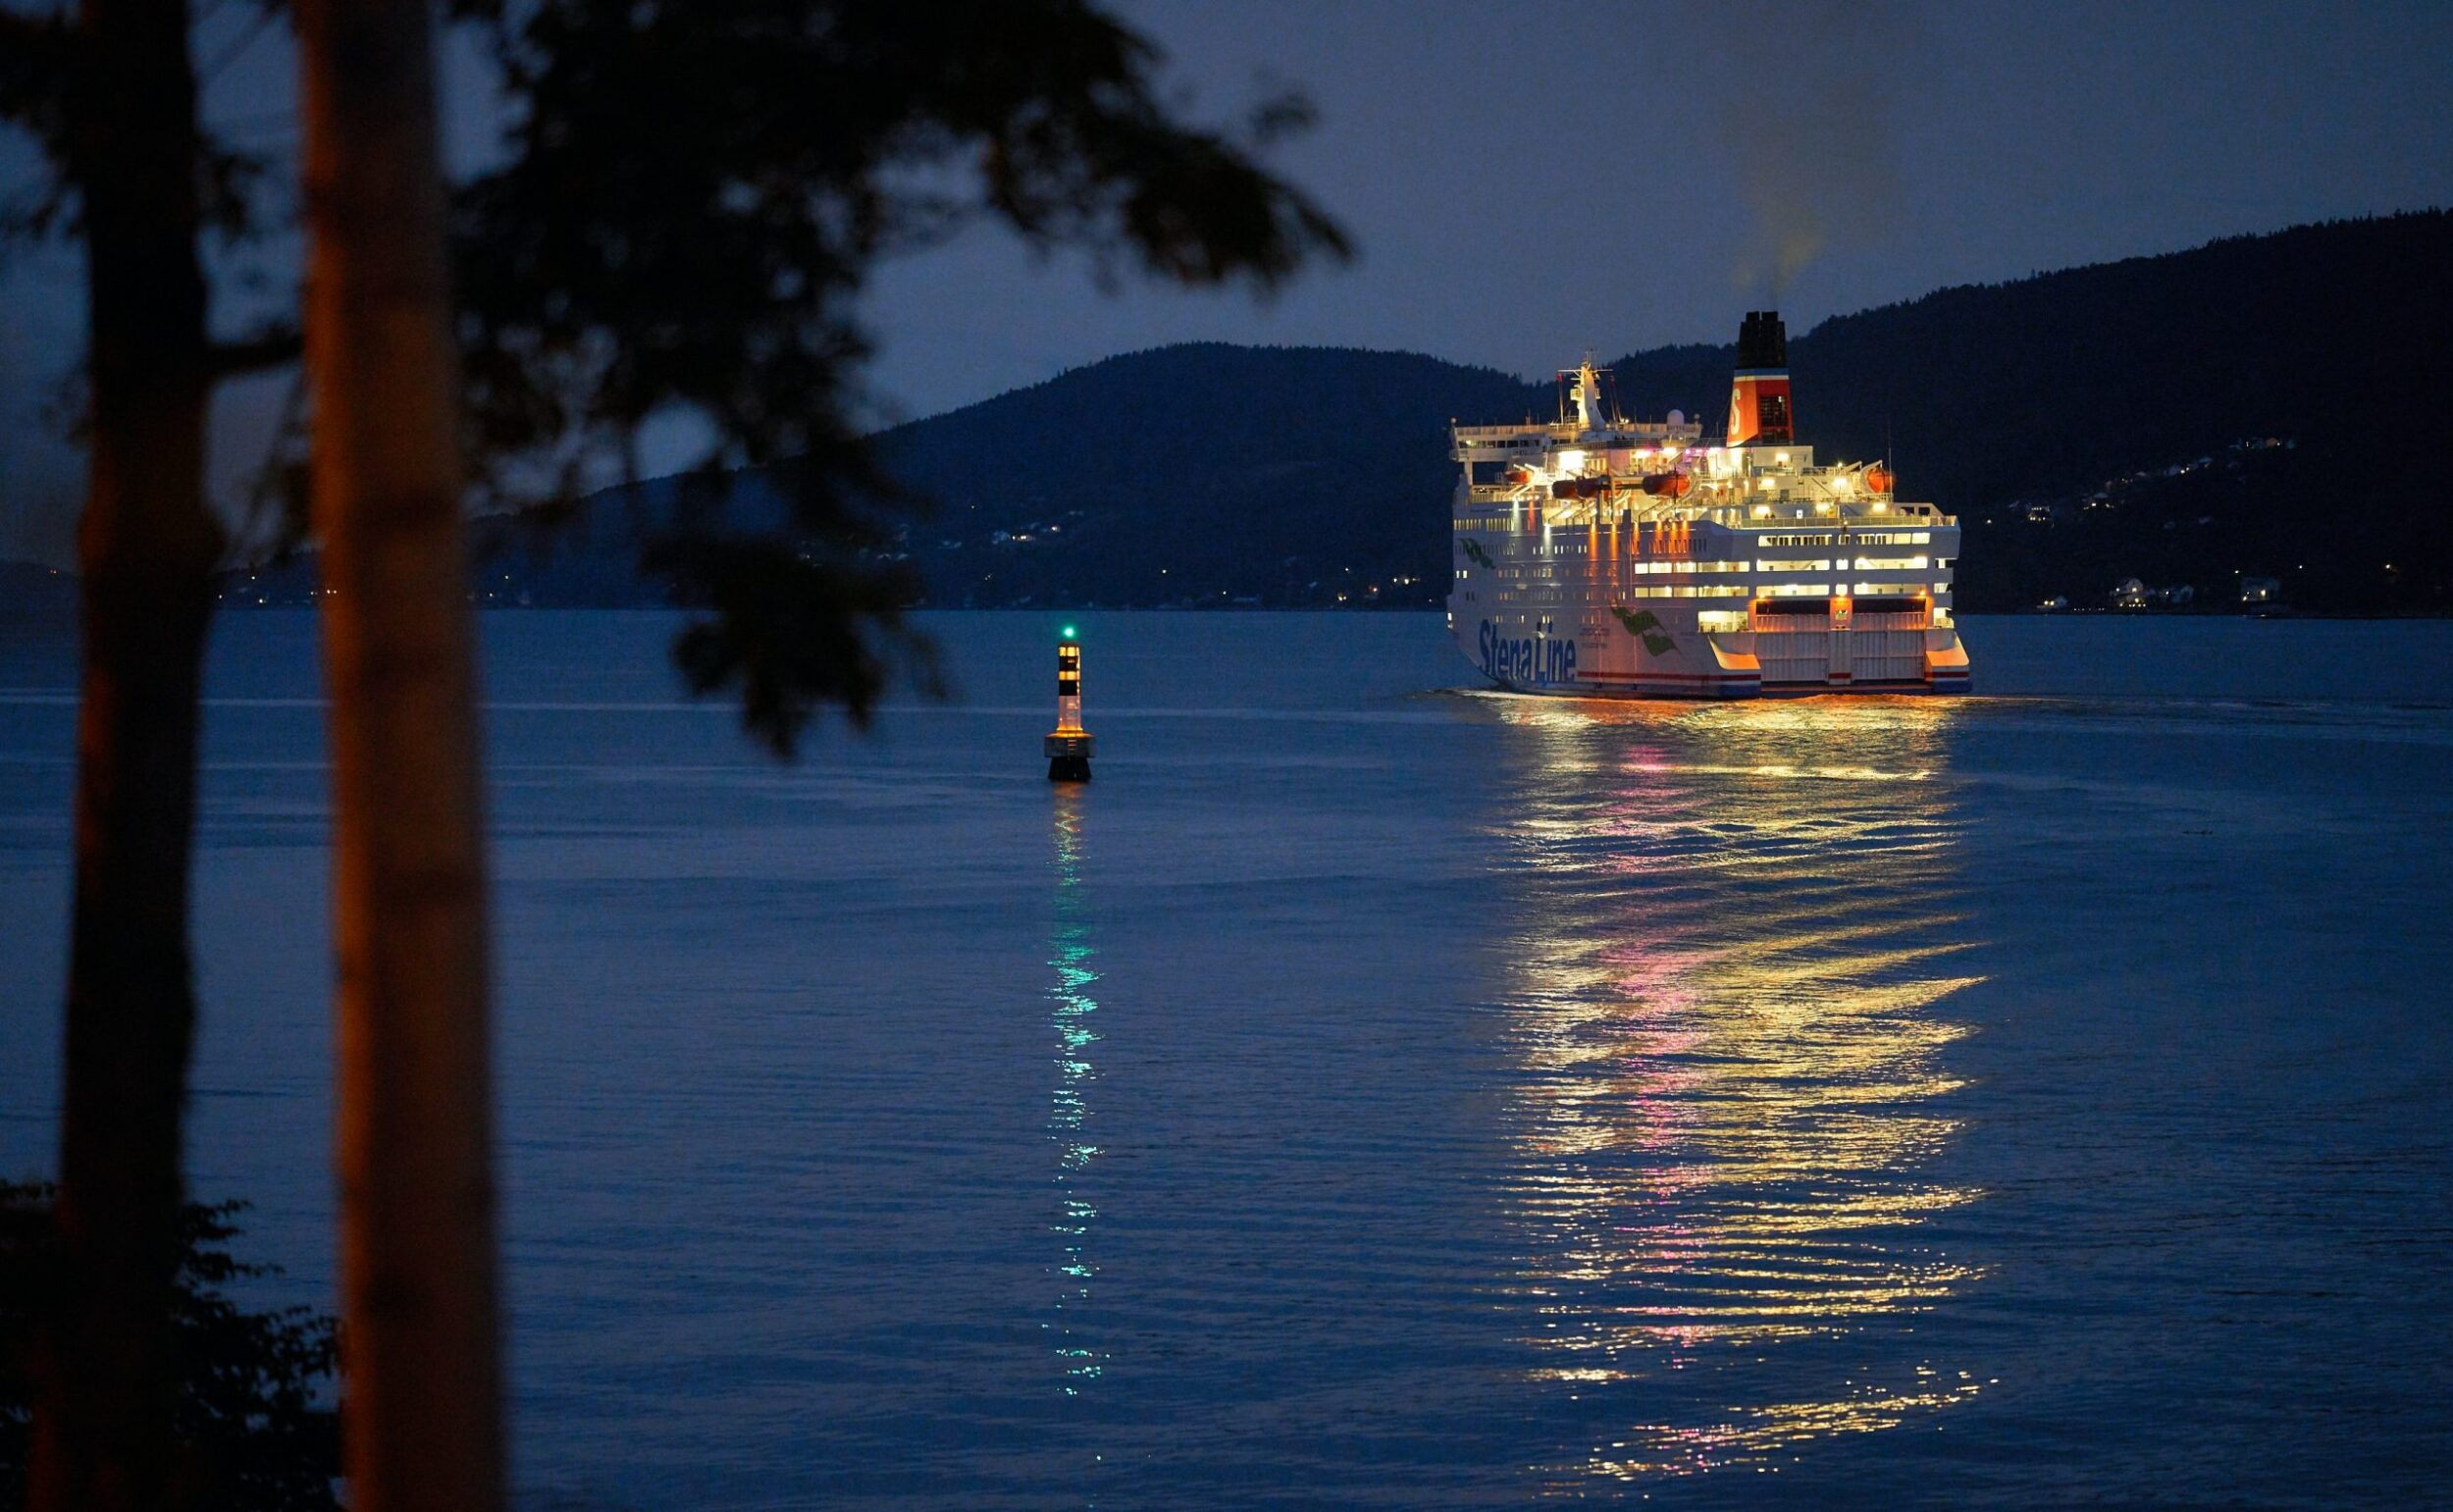 When the sun sets, nightlife onboard a Caribbean cruise gears up.